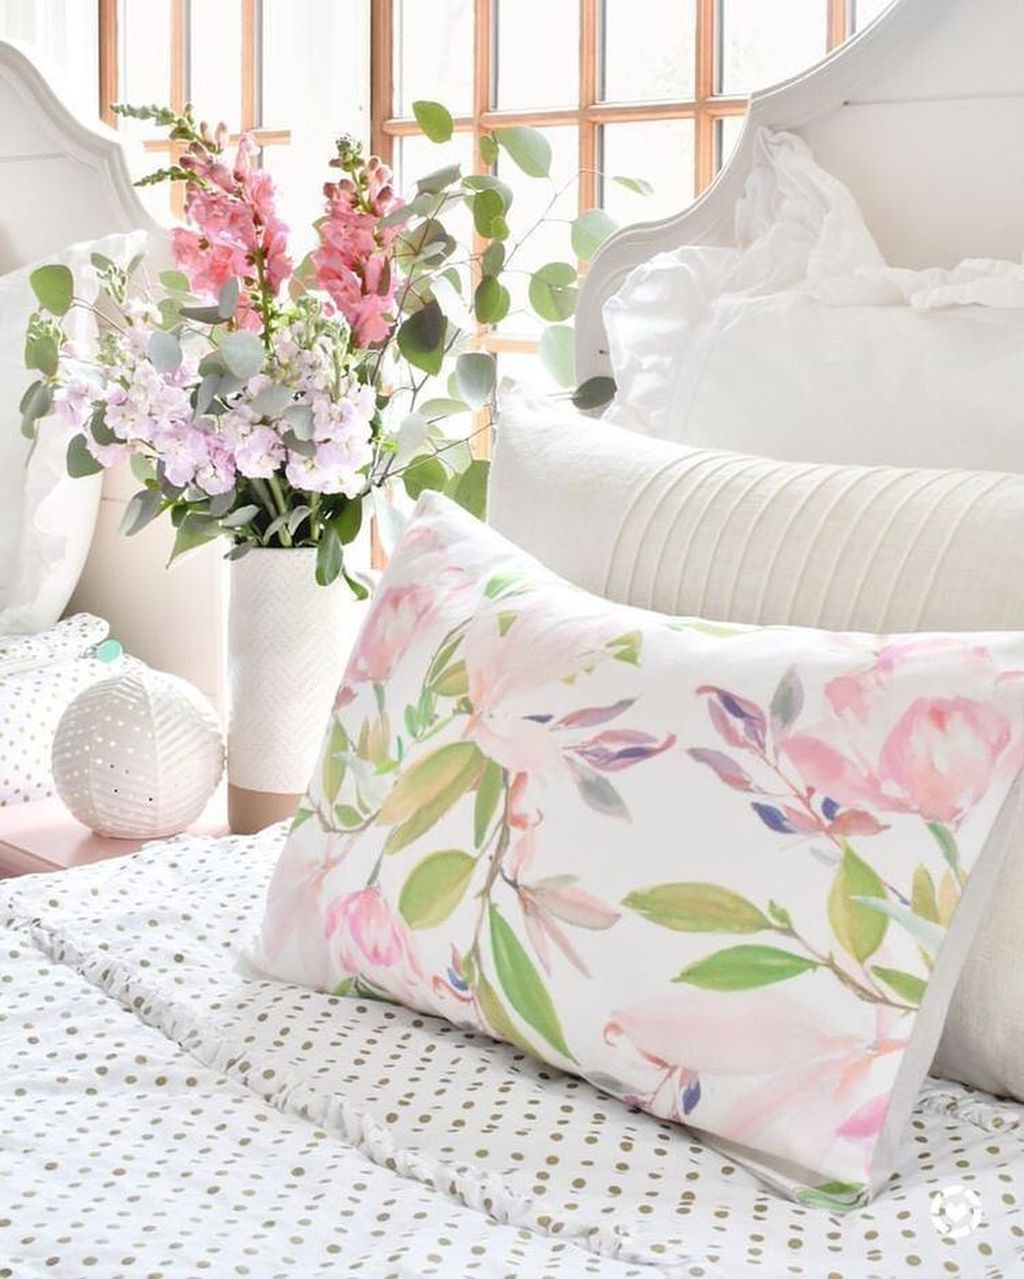 Lovely Winter Bedroom Design Ideas With Flower Themes To Try Asap 28